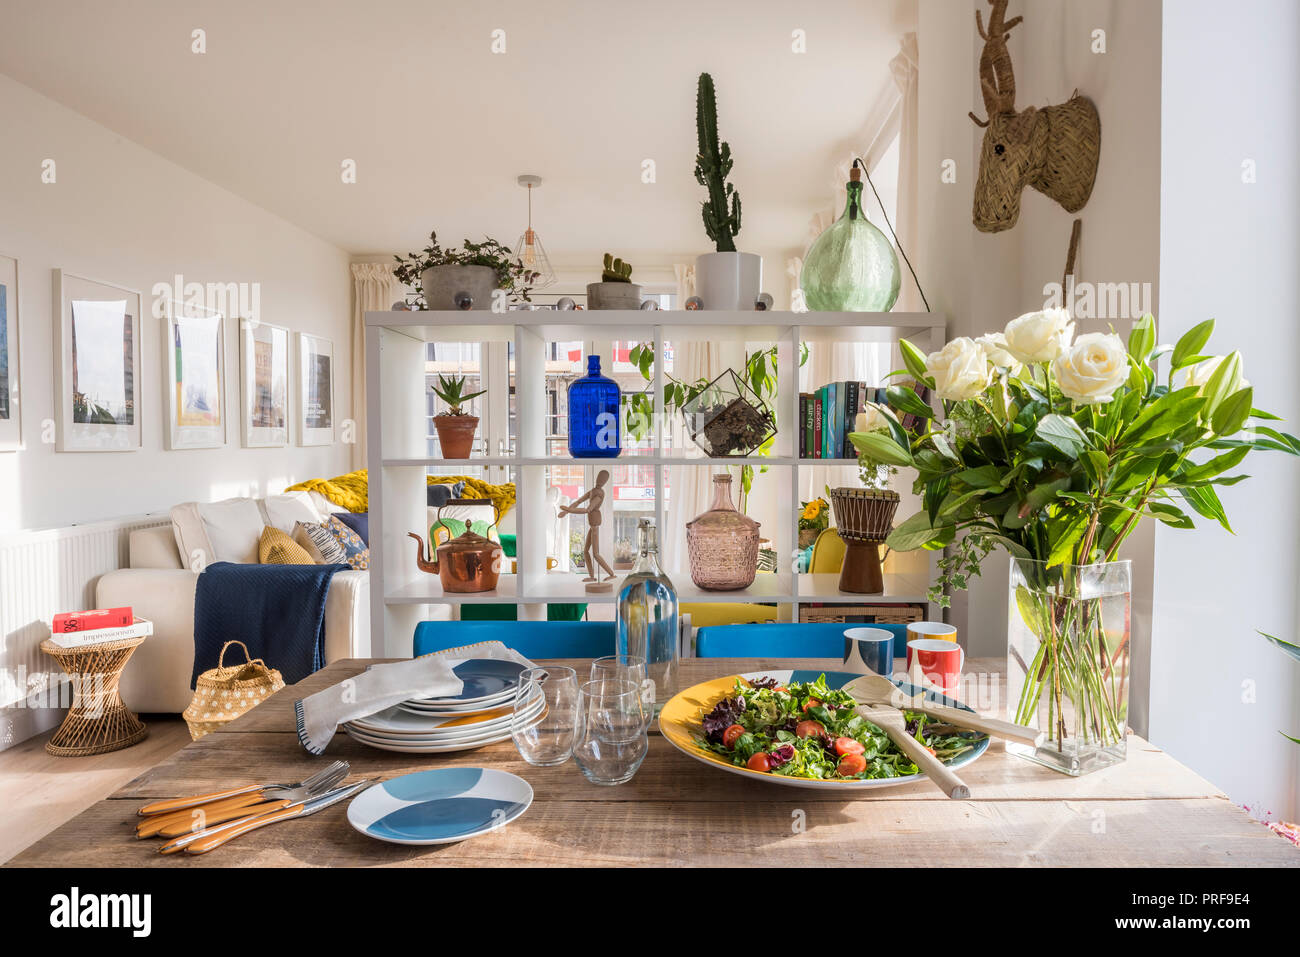 Salad on scaffold board dining table with shelf unit room divider - Stock Image